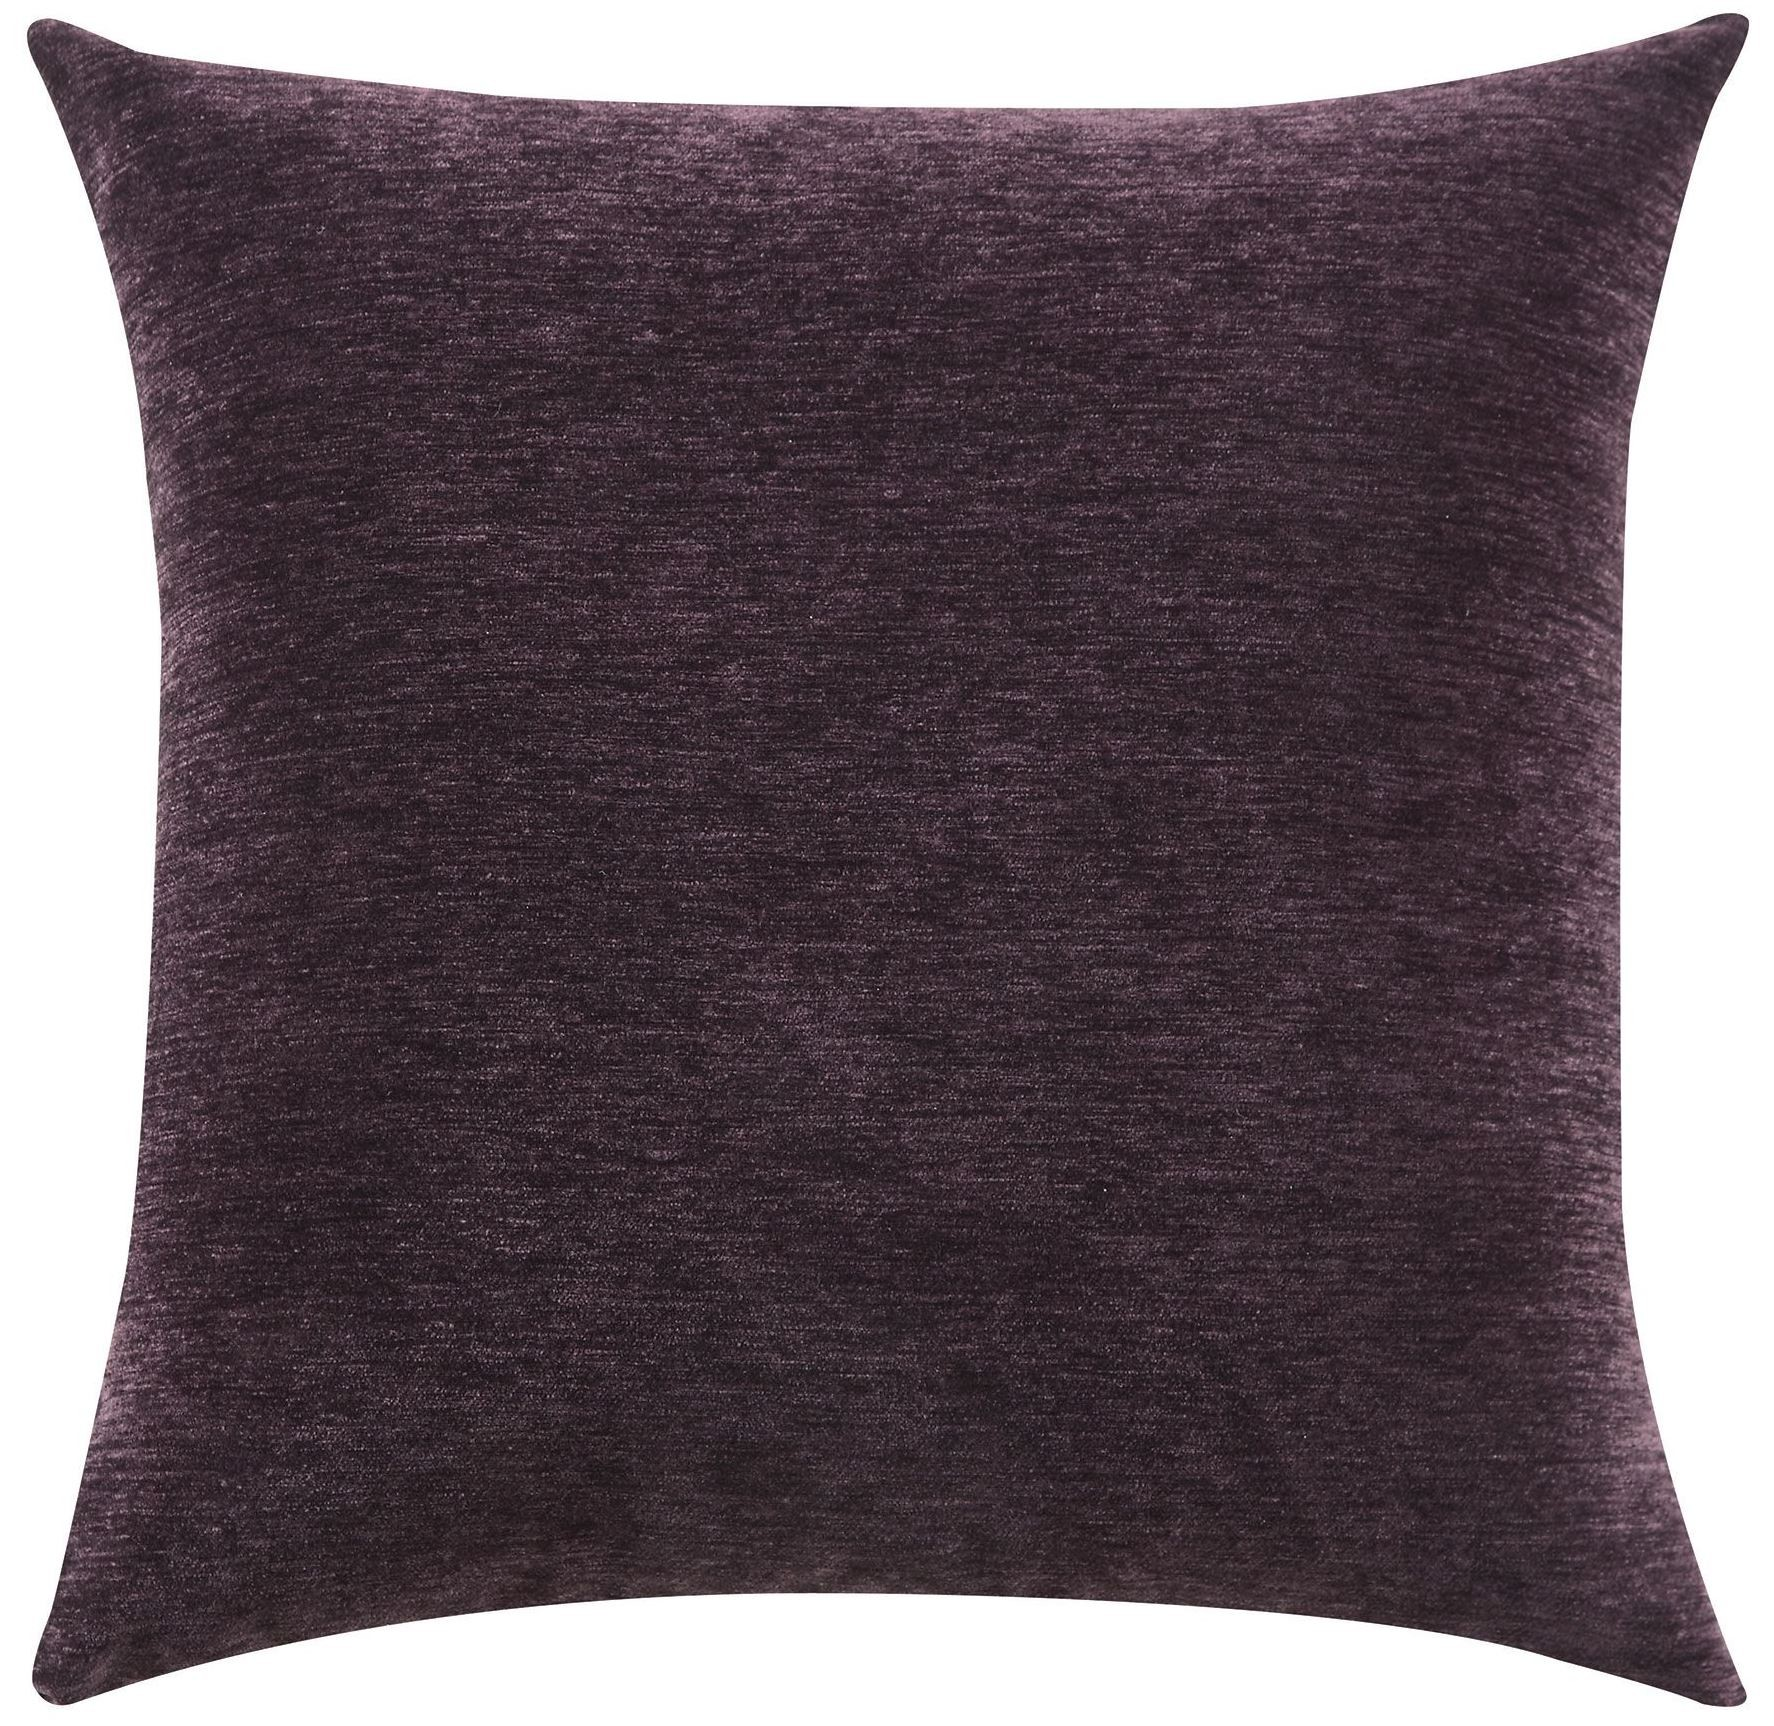 Eggplant Accent Pillow, 905127, Coaster Furniture